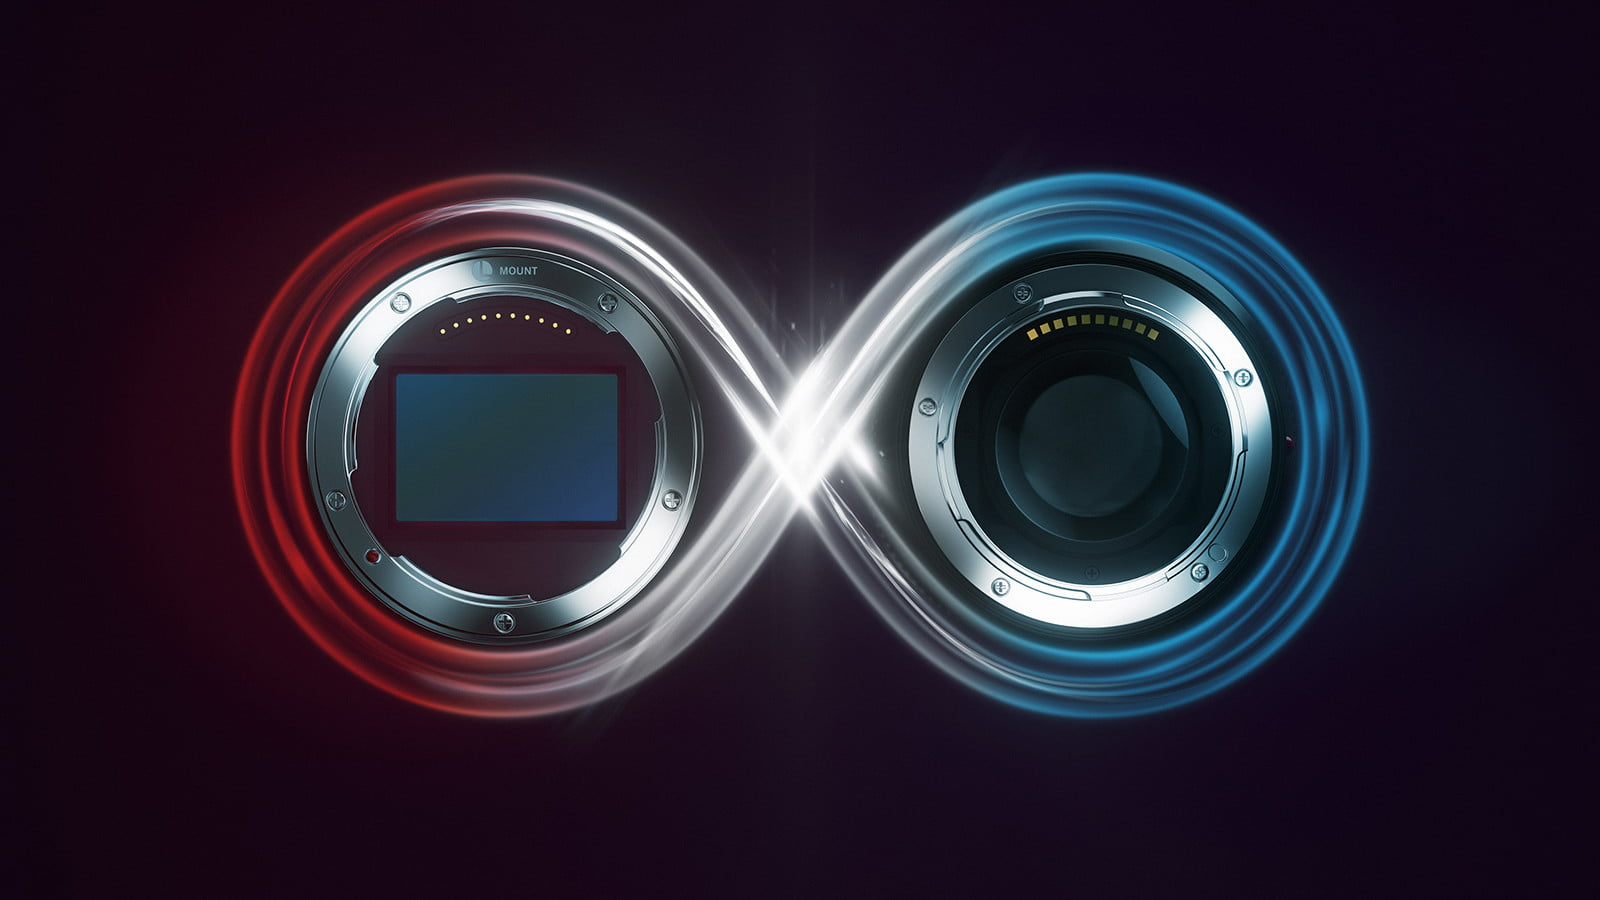 The new L-Mount Alliance Means Gear From Leica, Sigma